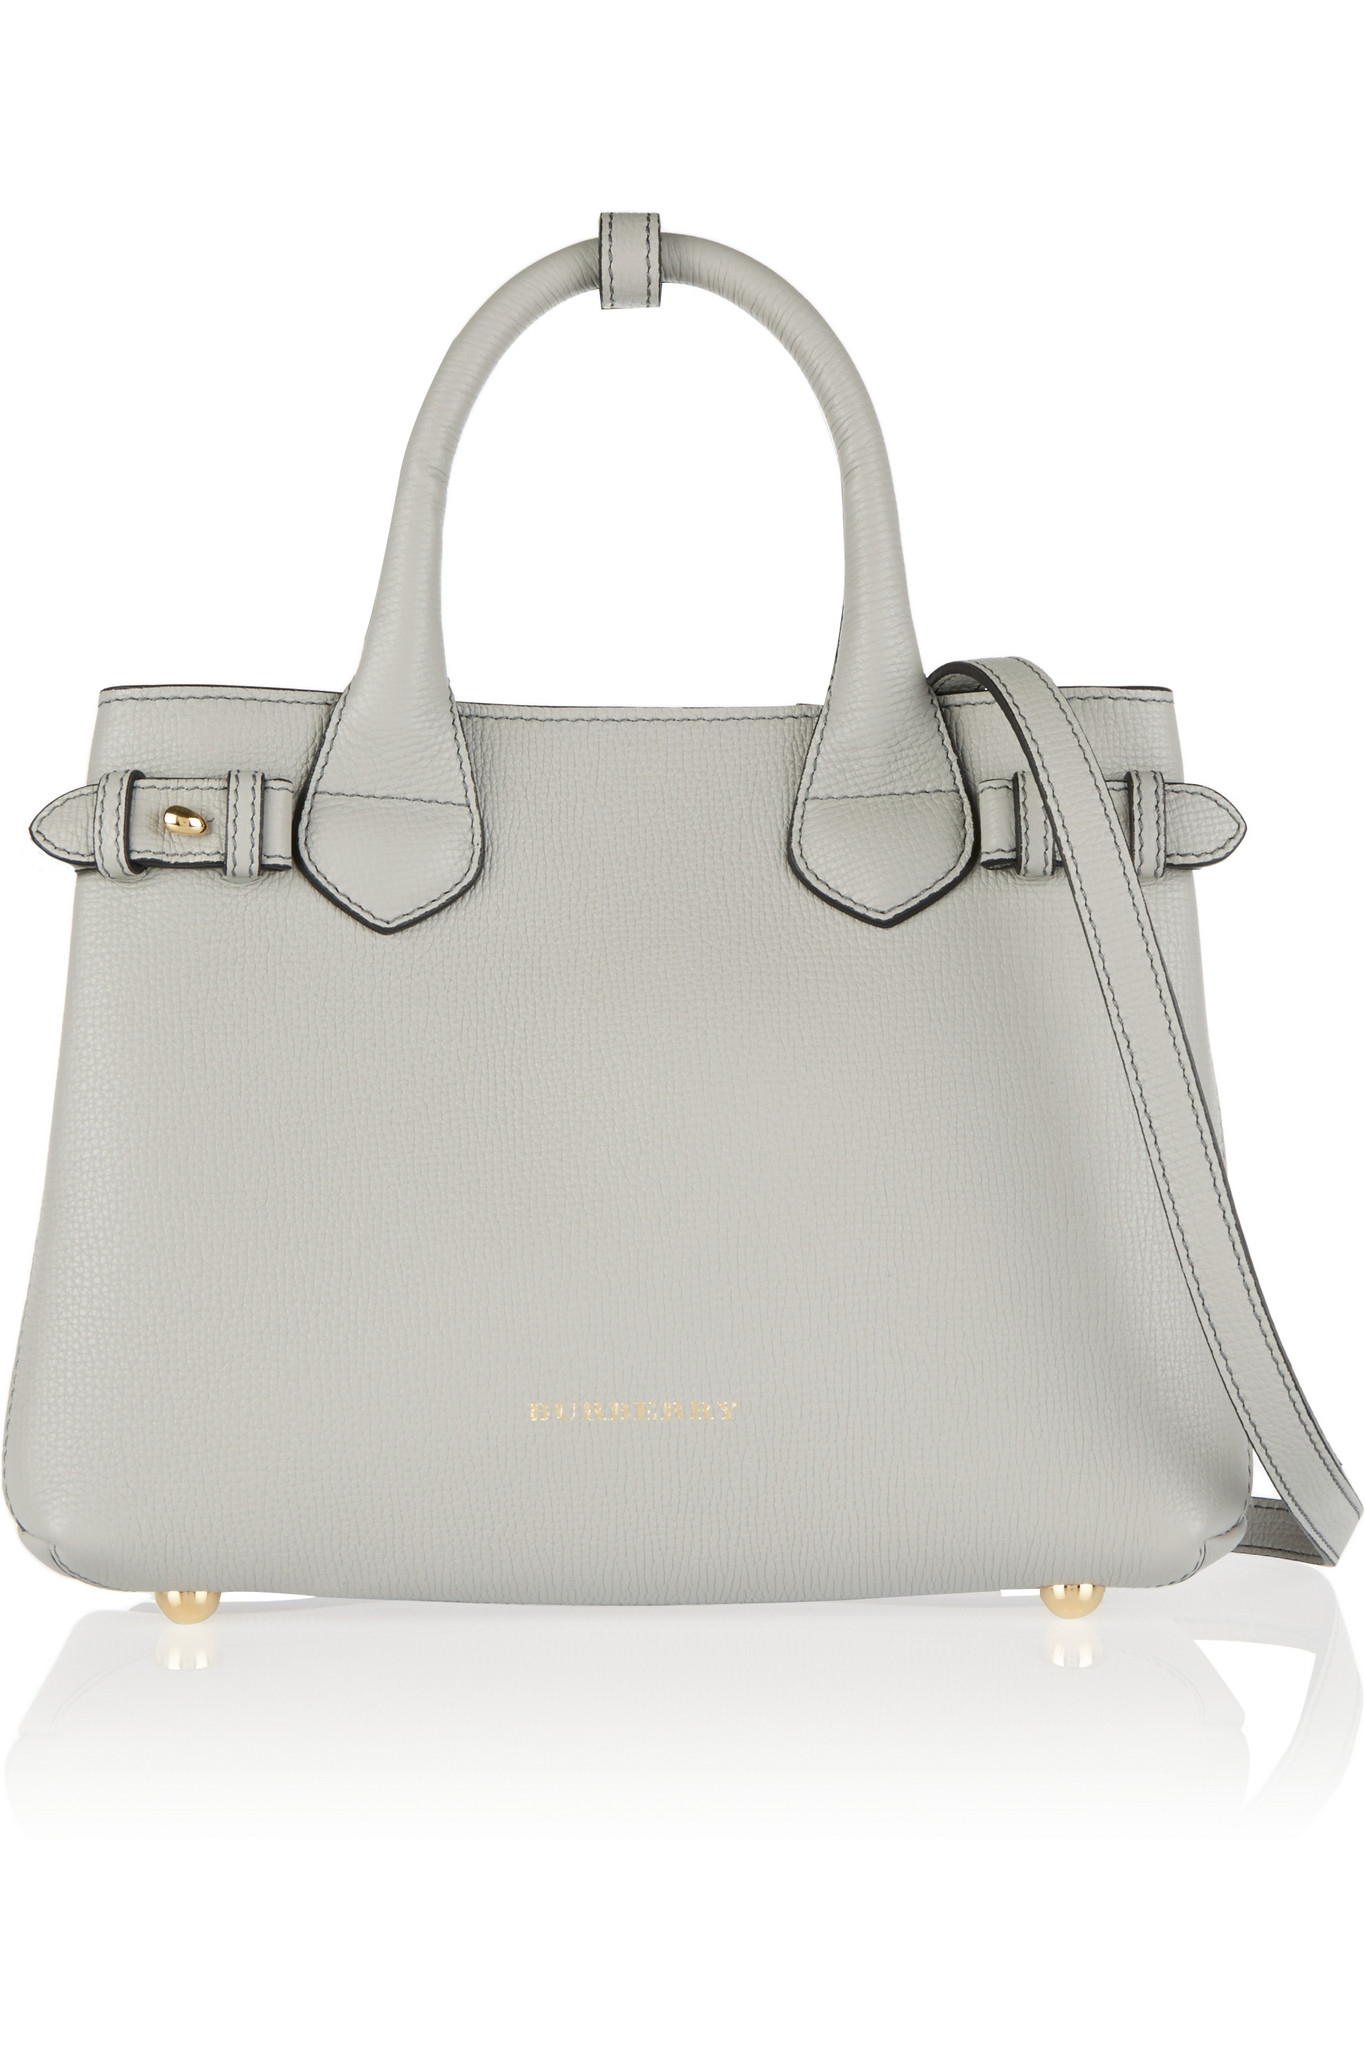 Lyst - Burberry London Small Checked Canvas-paneled Leather Shoulder ... 1833256e29987